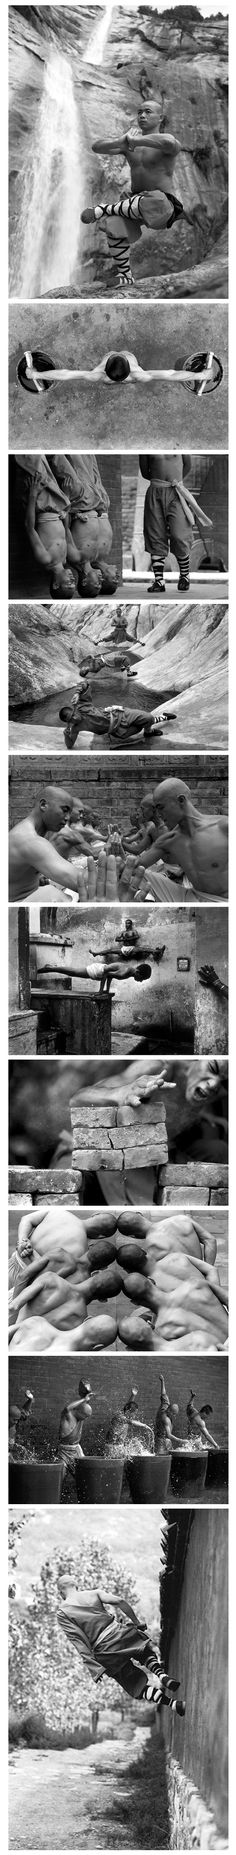 Shaolin Monks, mind over matter